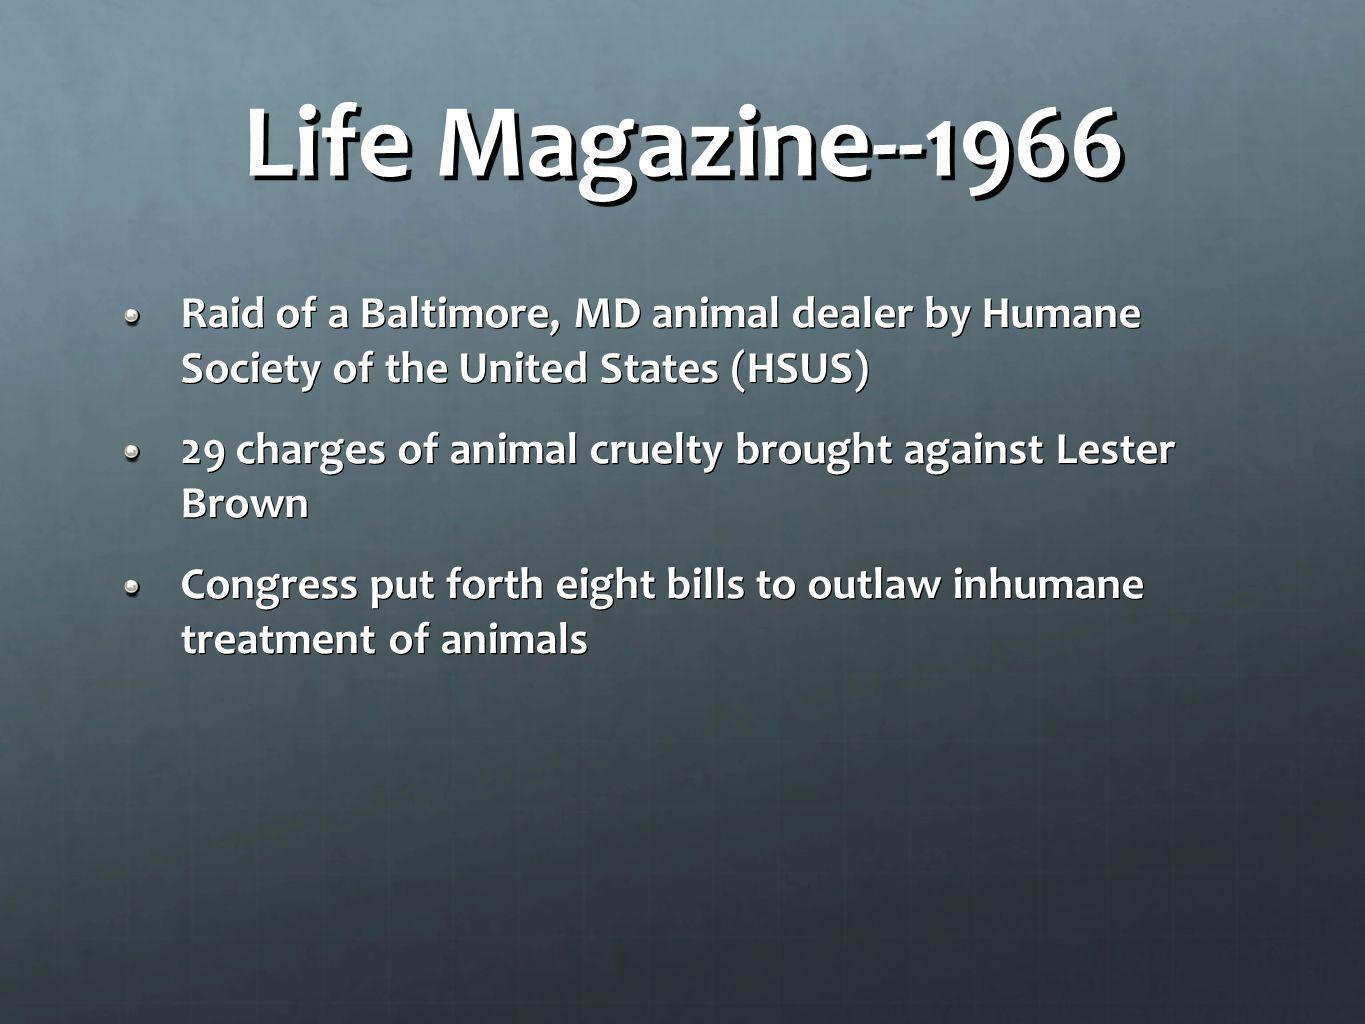 Life Magazine--1966 Raid of a Baltimore, MD animal dealer by Humane Society of the United States (HSUS)